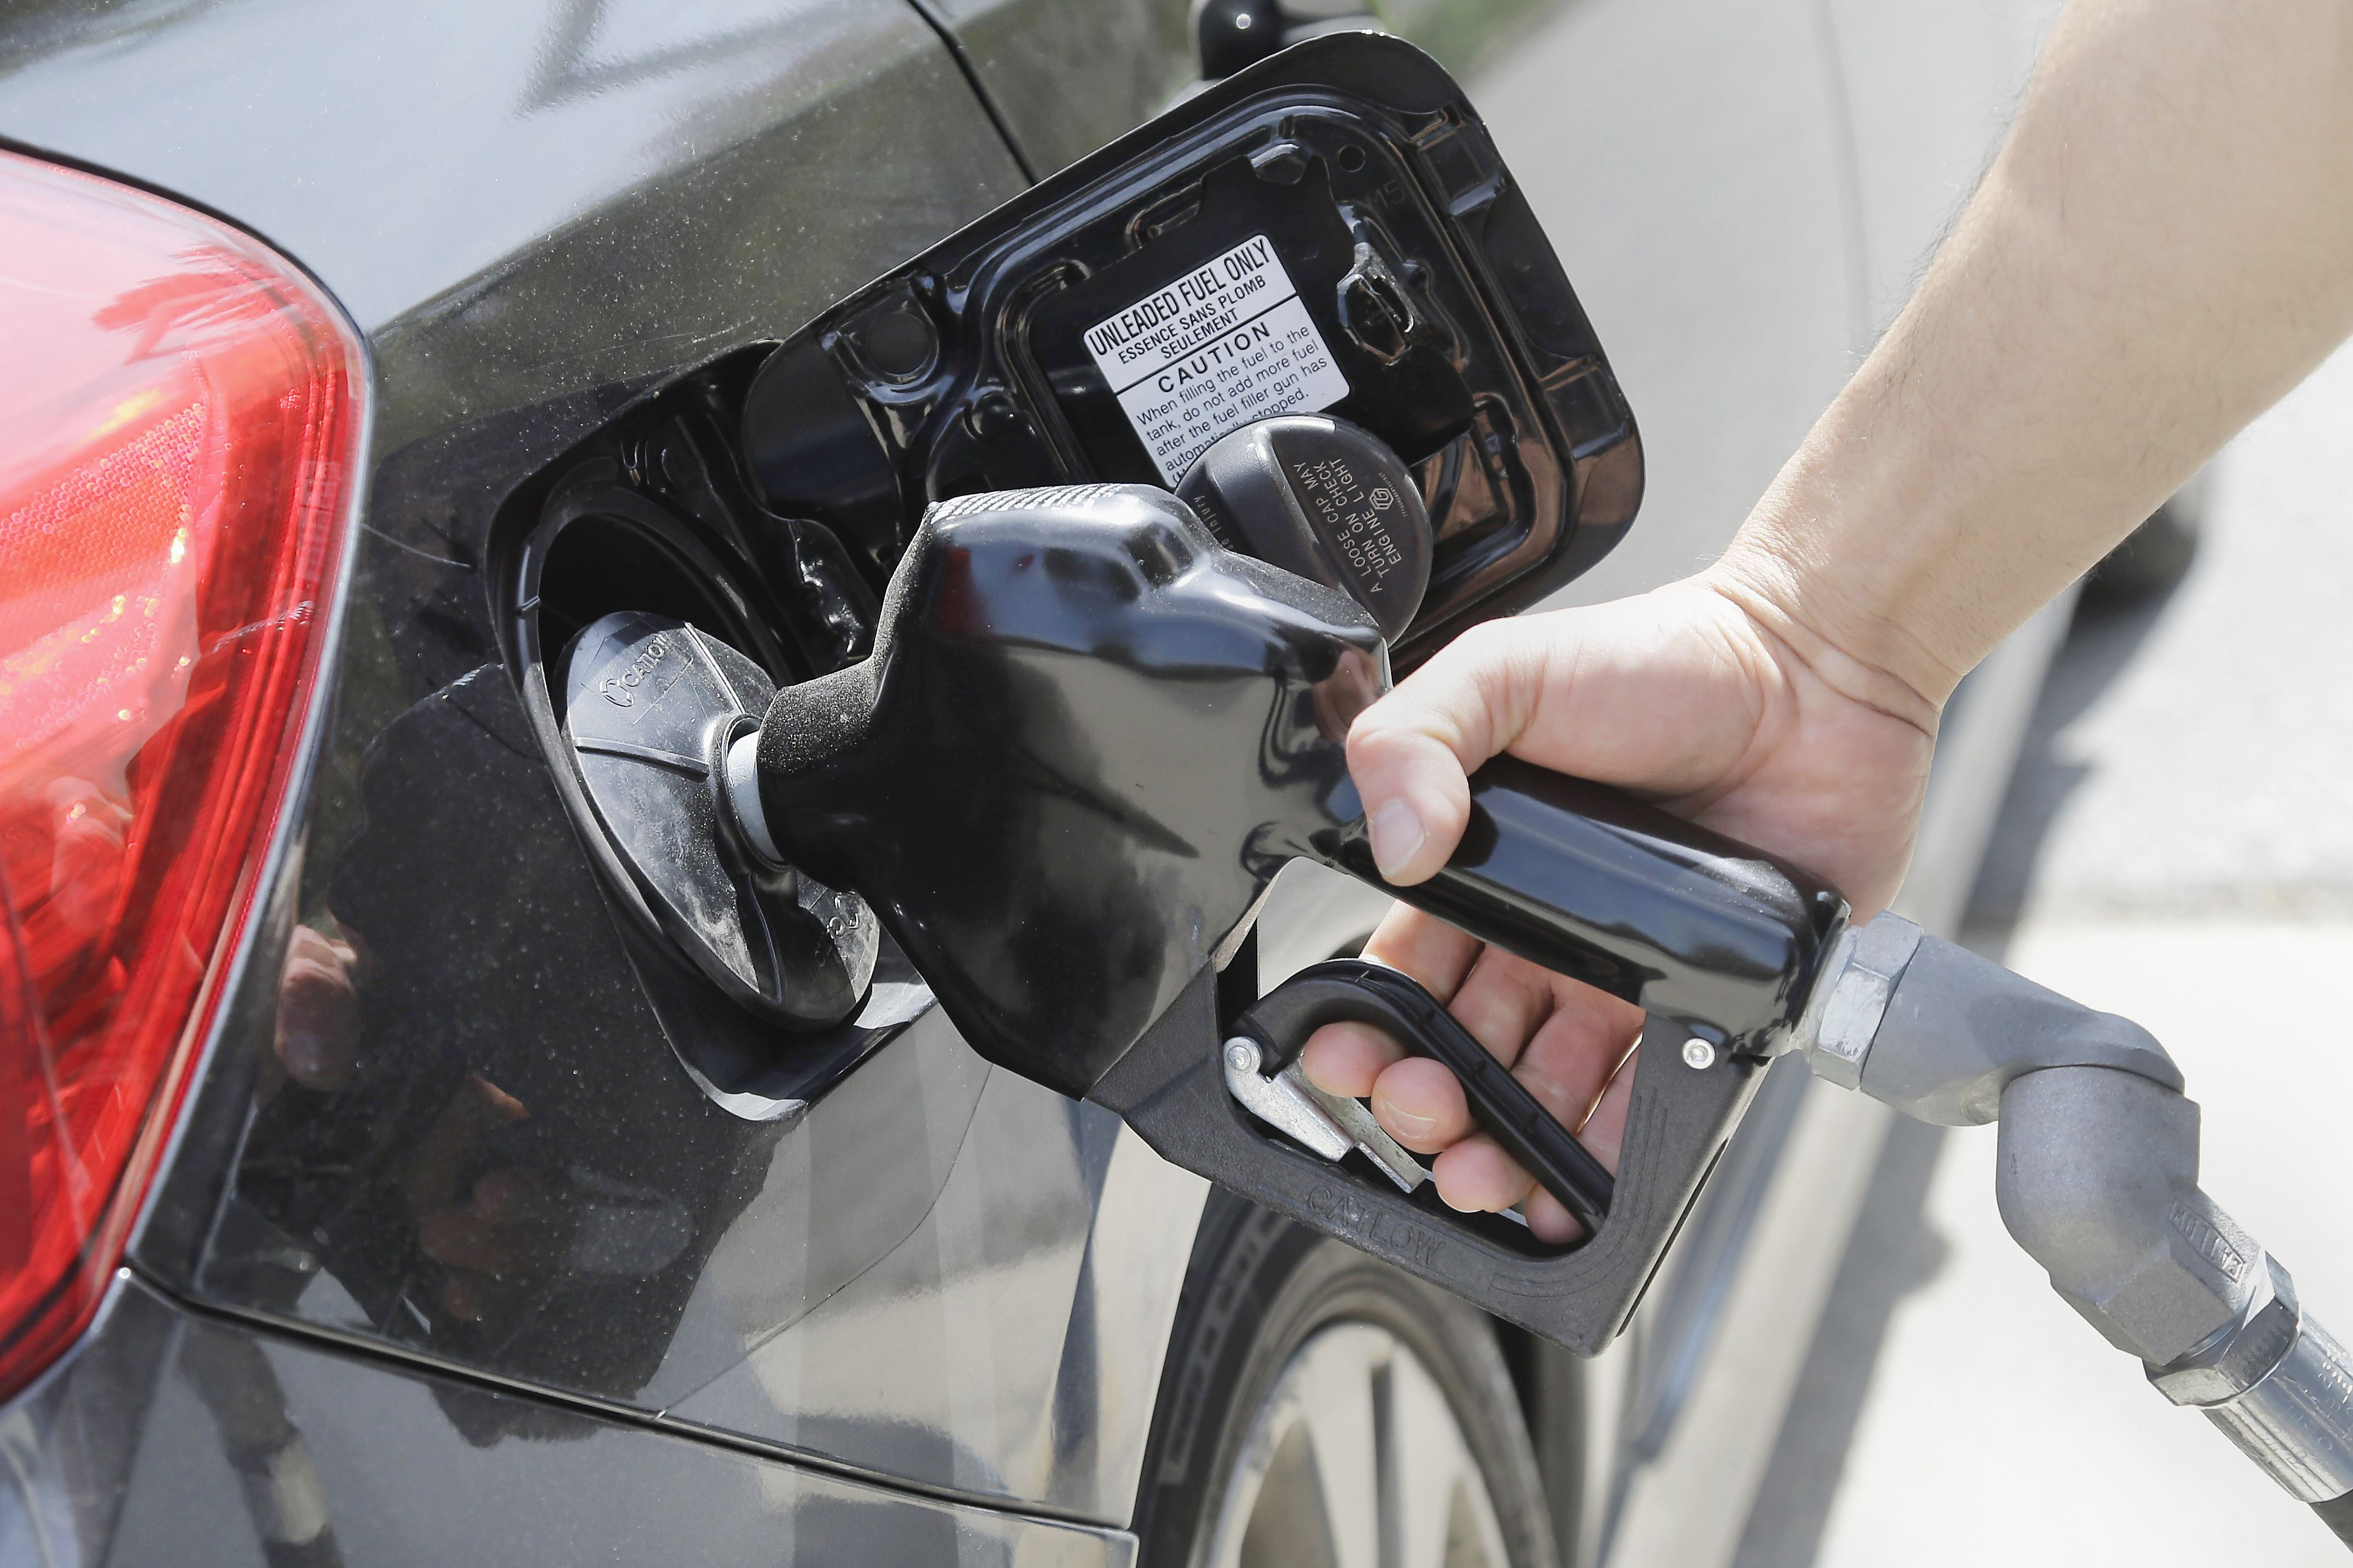 Two Dollar Gasoline The average gas prices in the Pittsburgh area dipped slightly last week.